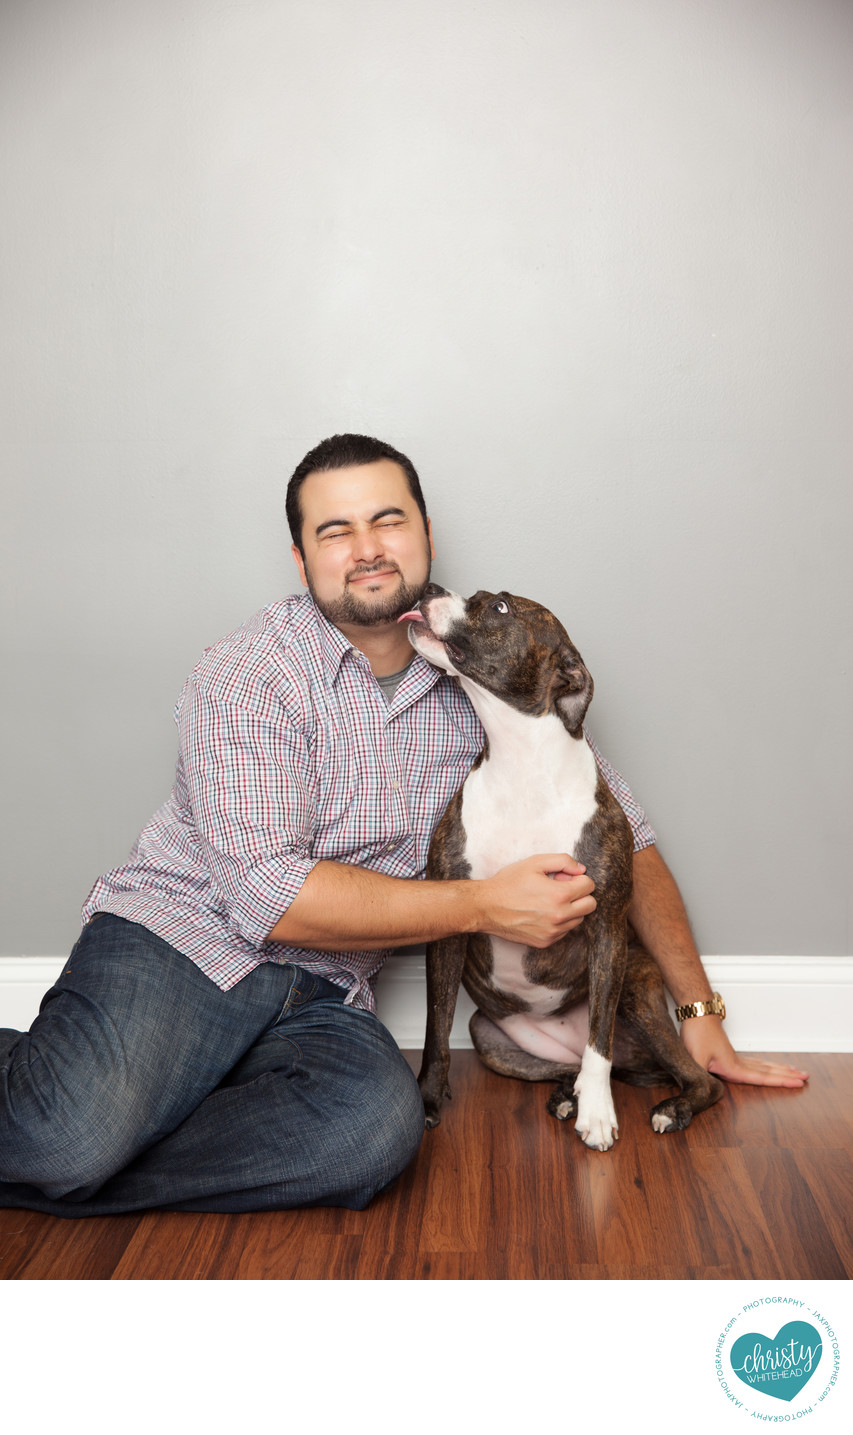 Dad & Doggy Photo Shoot Christy Whitehead Photography